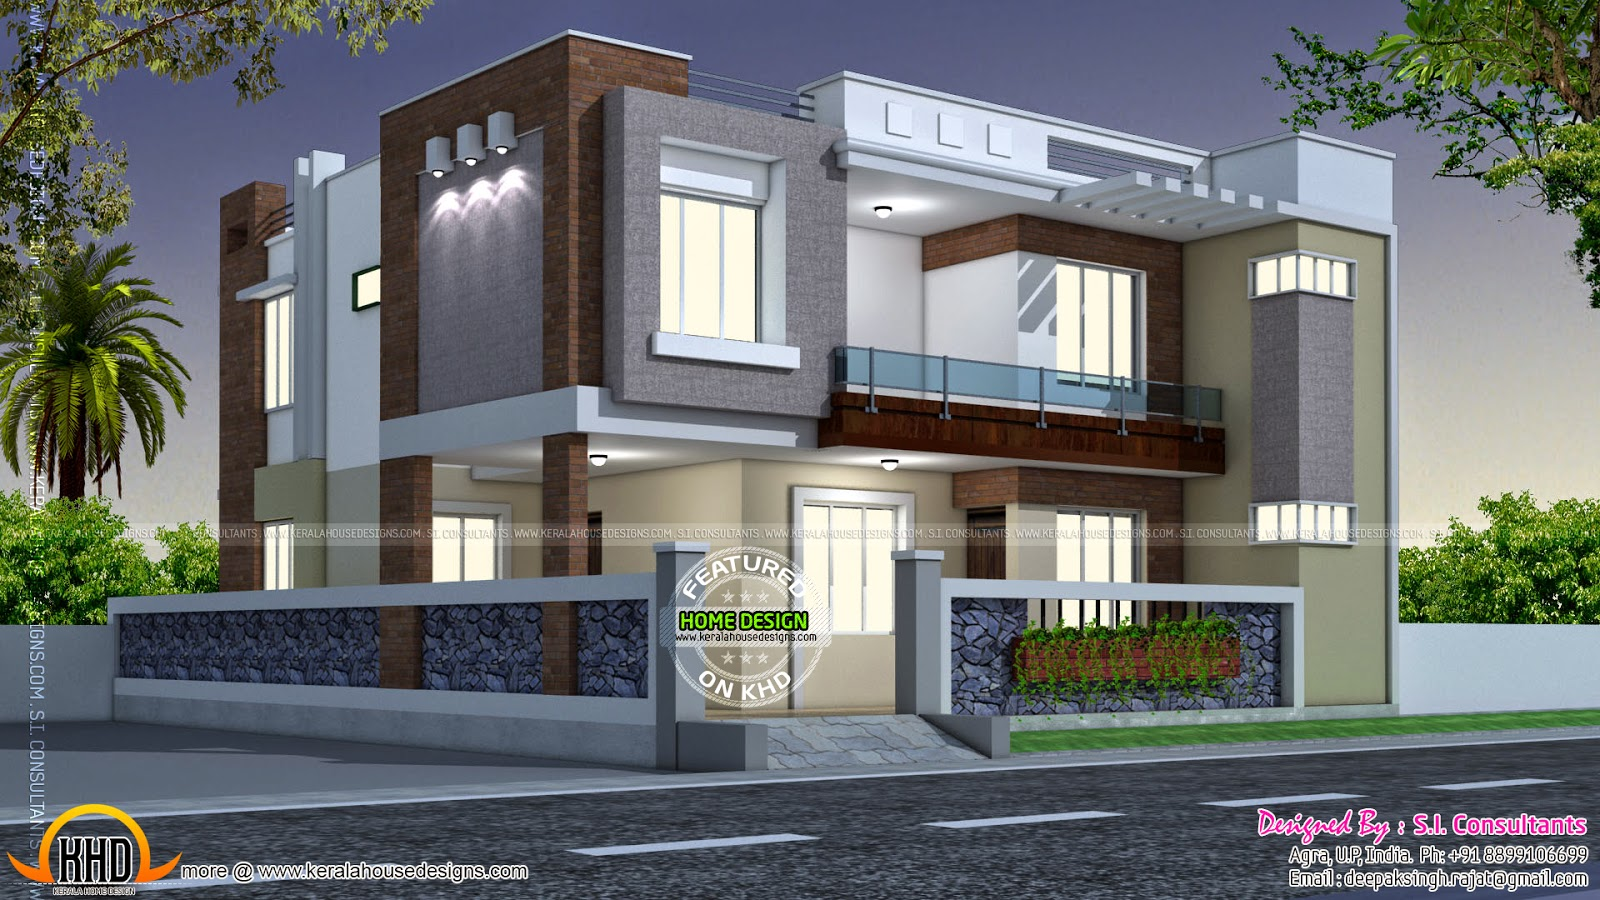 House plans and design modern house plans for india Indian home design